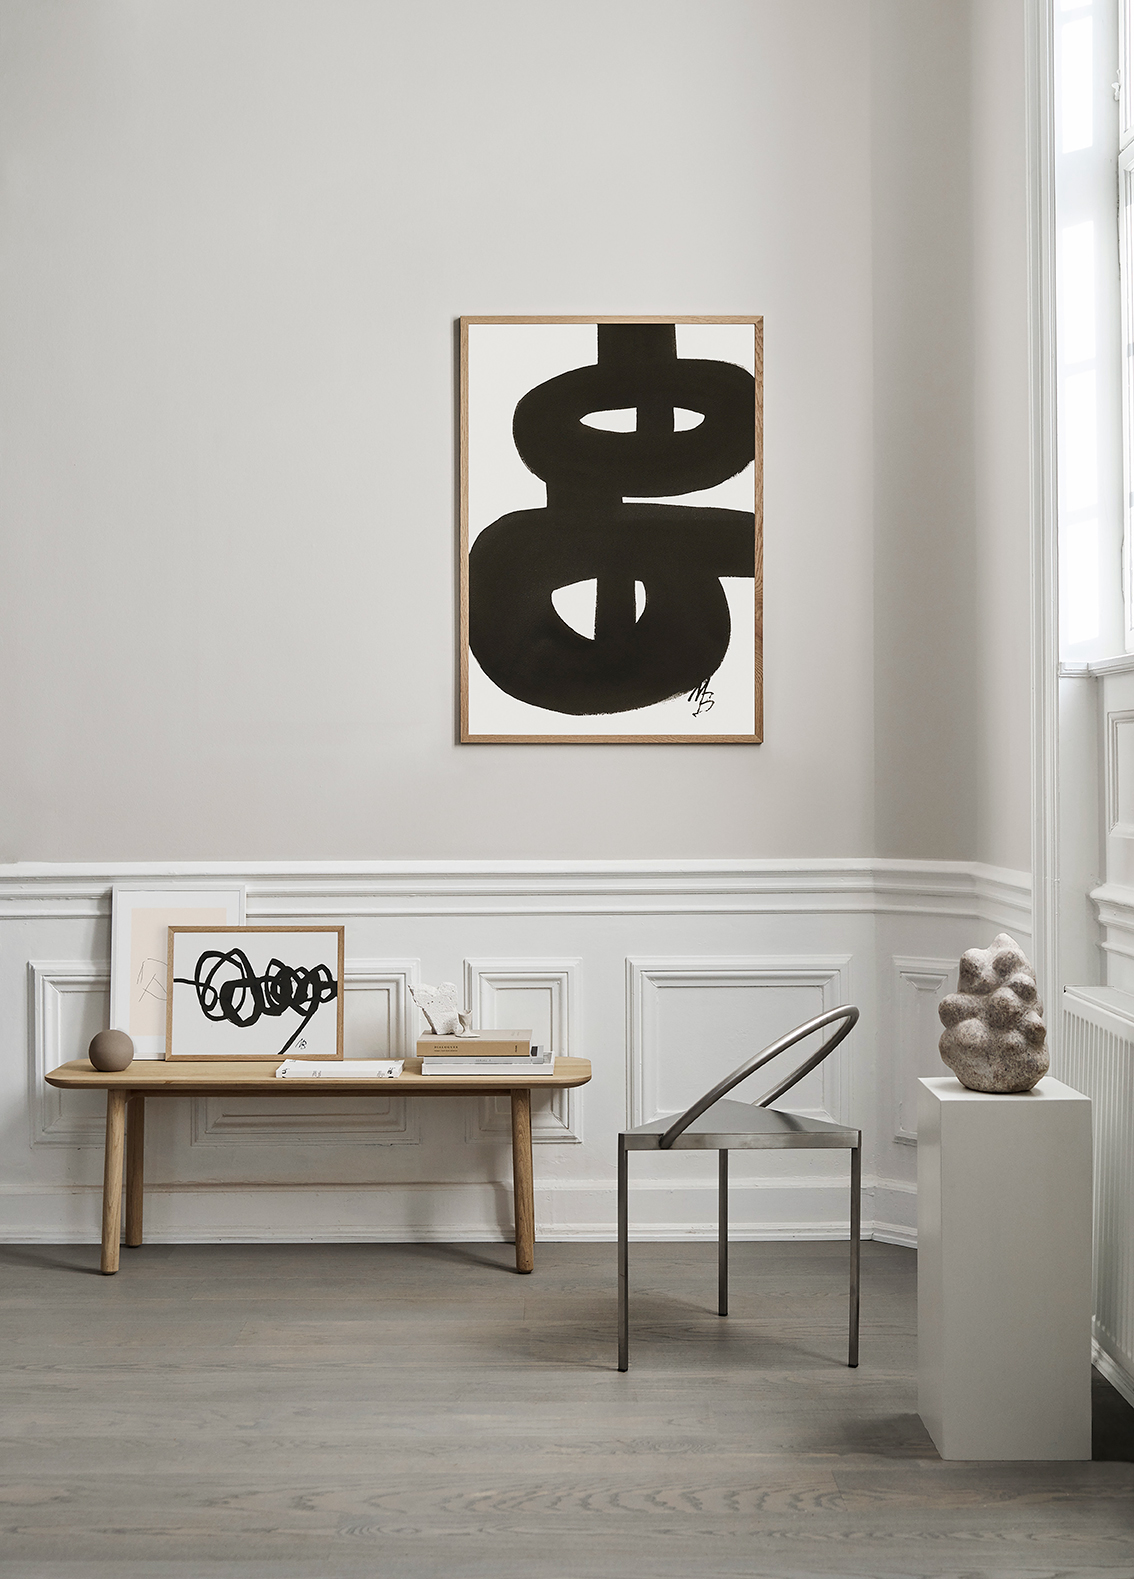 Malene Birger x THE POSTER CLUB via Ollie & Sebs Haus